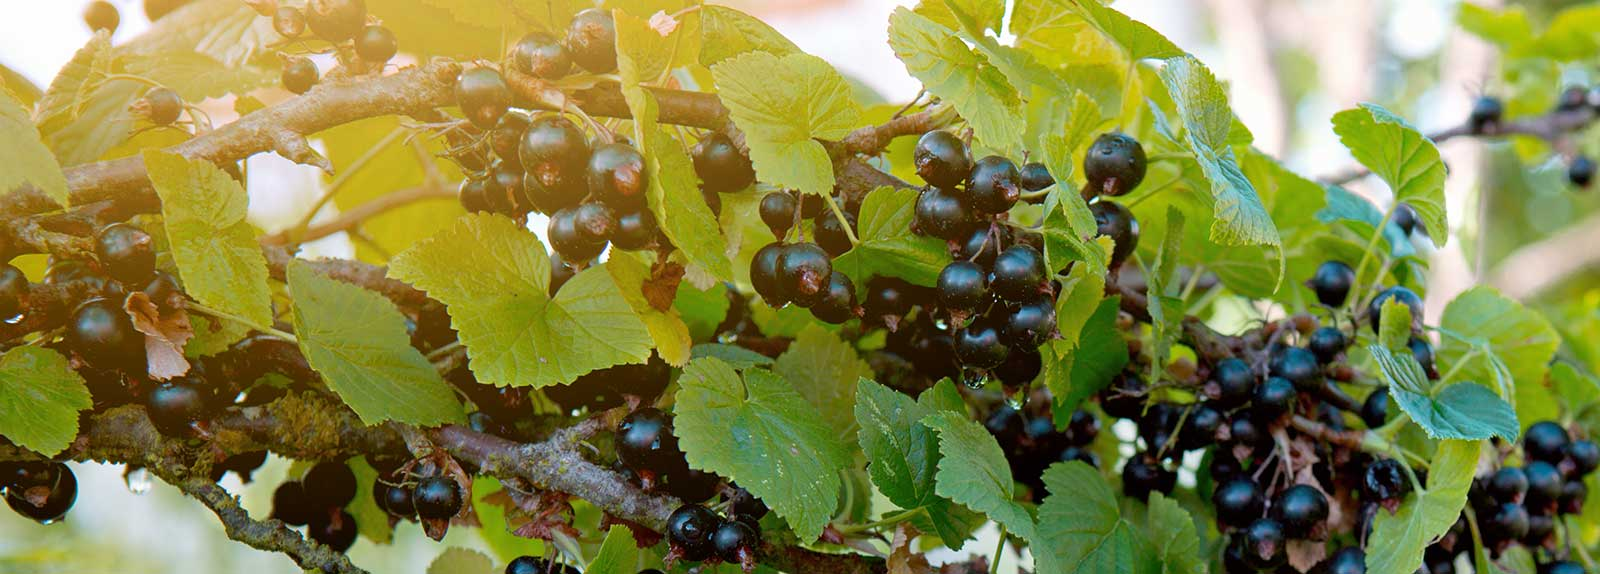 Blackcurrants - Our Berries Page Header